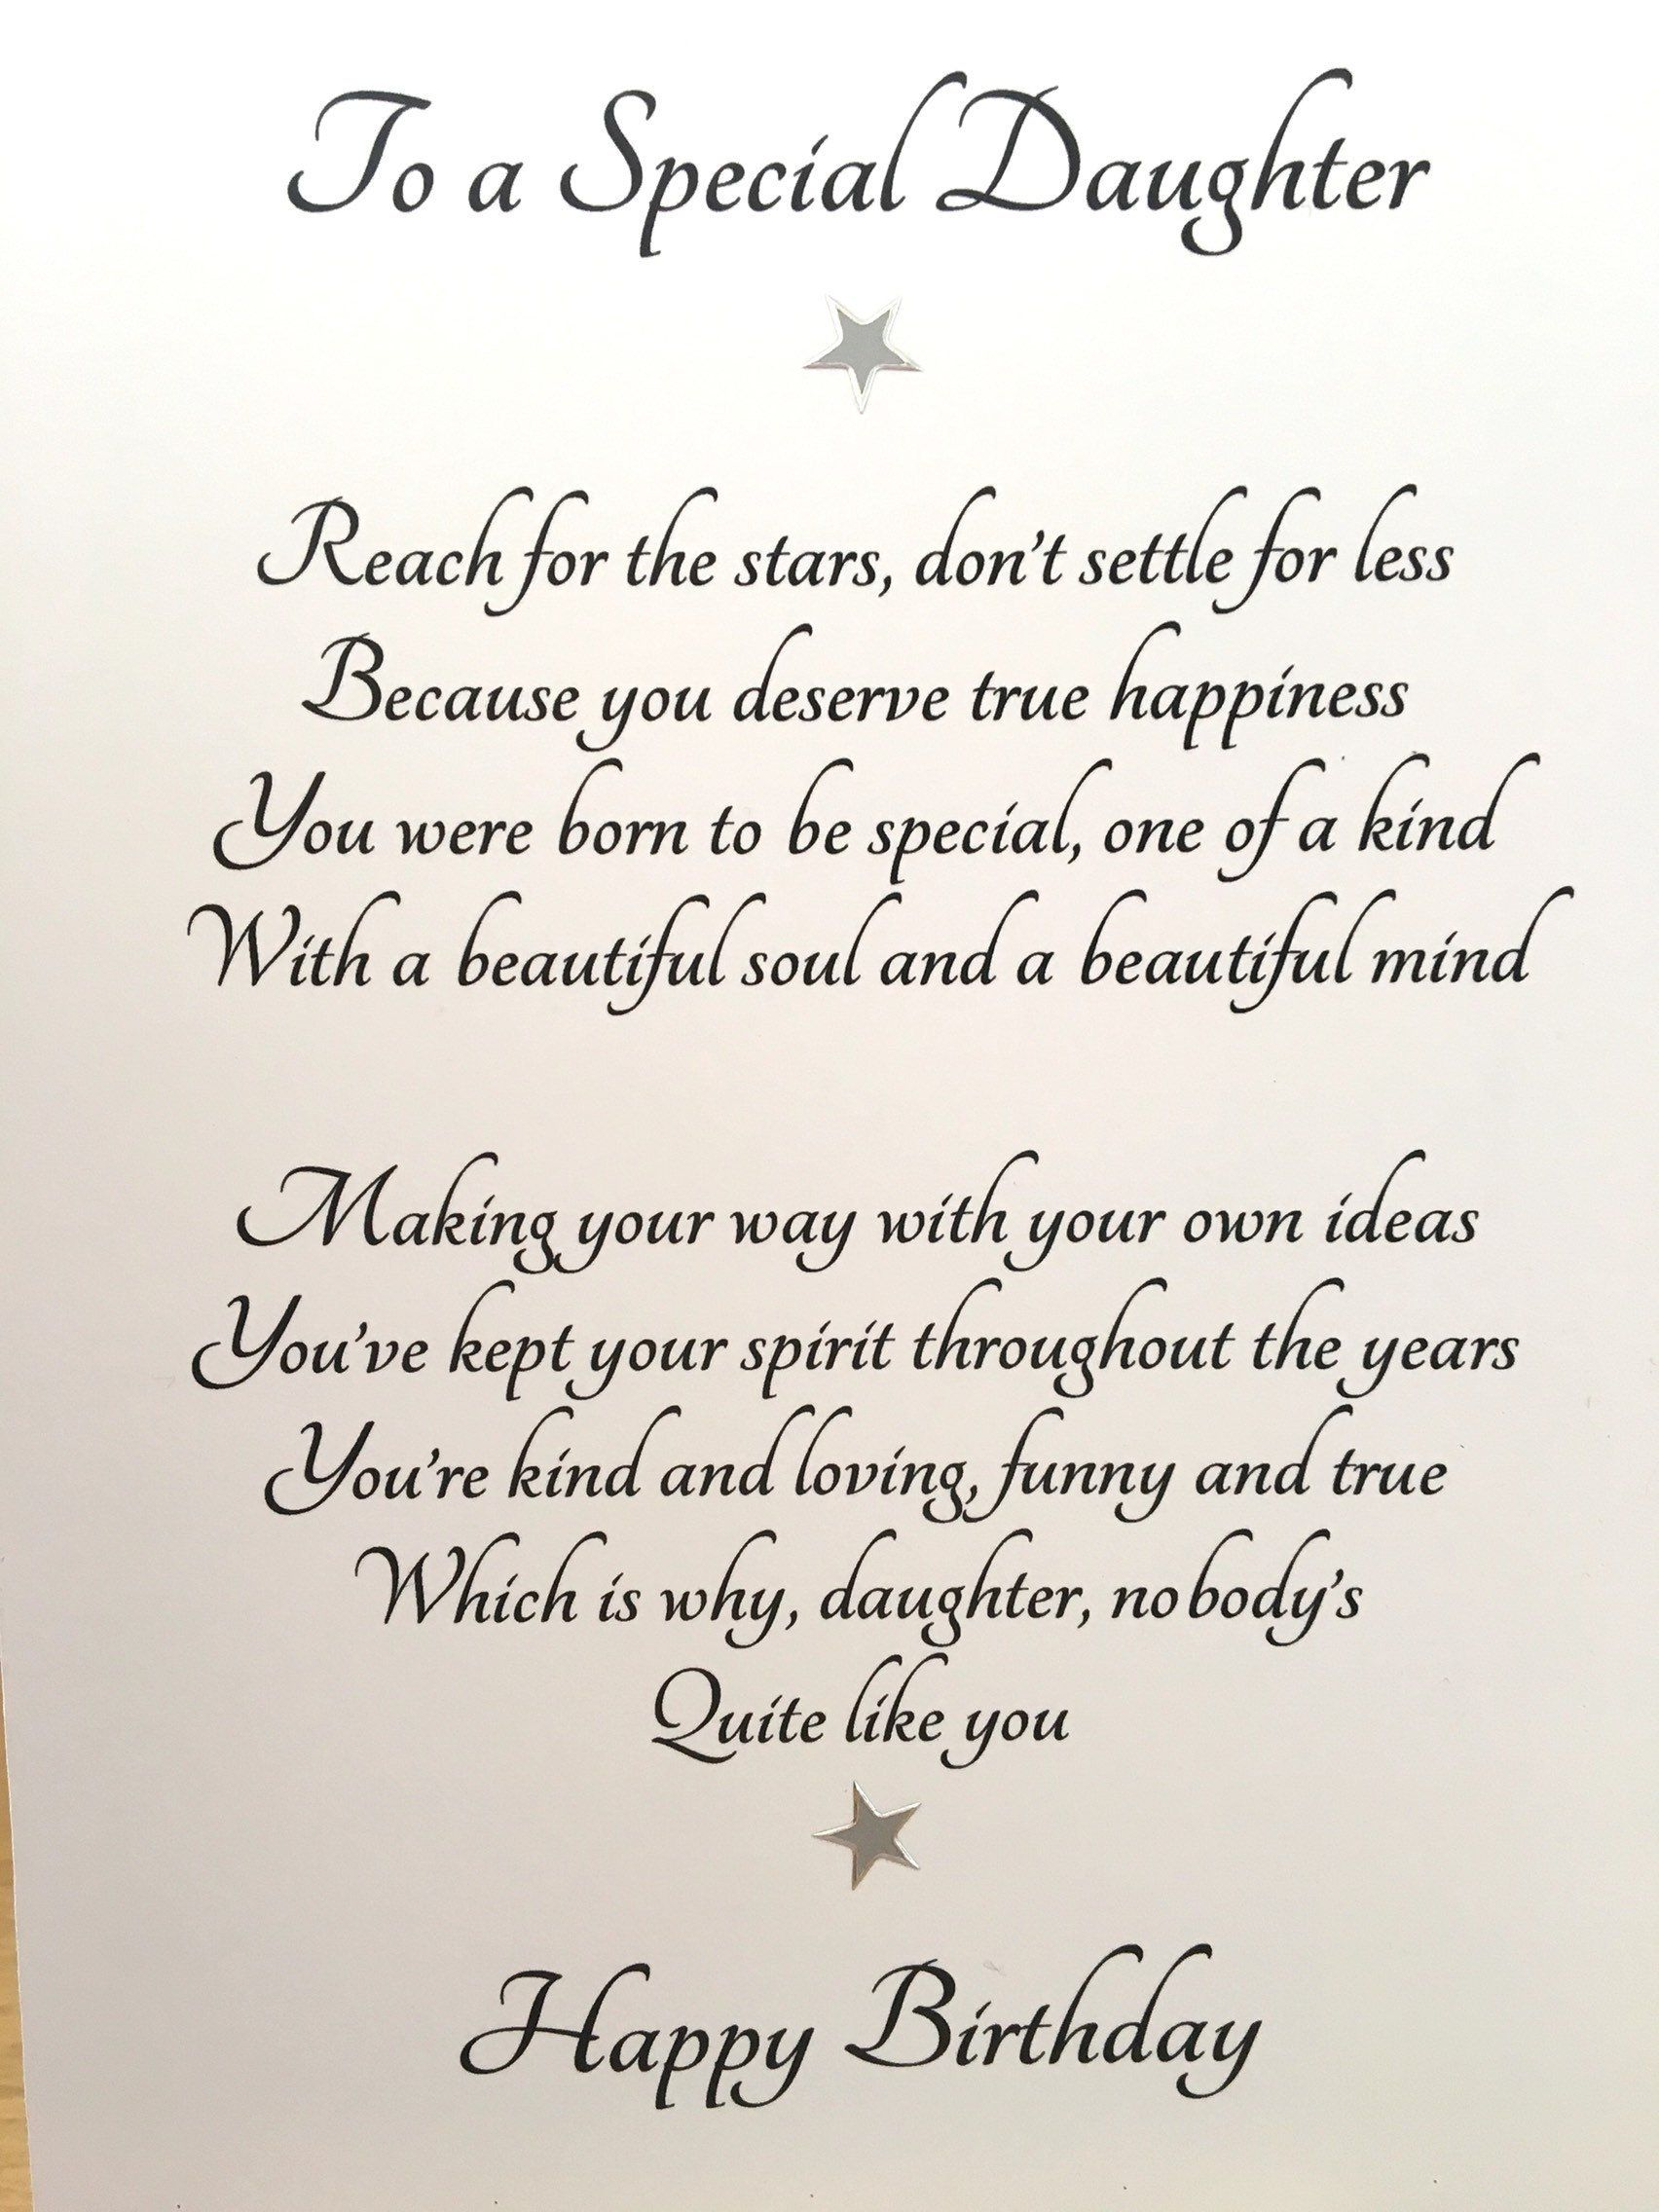 Card for adult daughter, special daughter's birthday